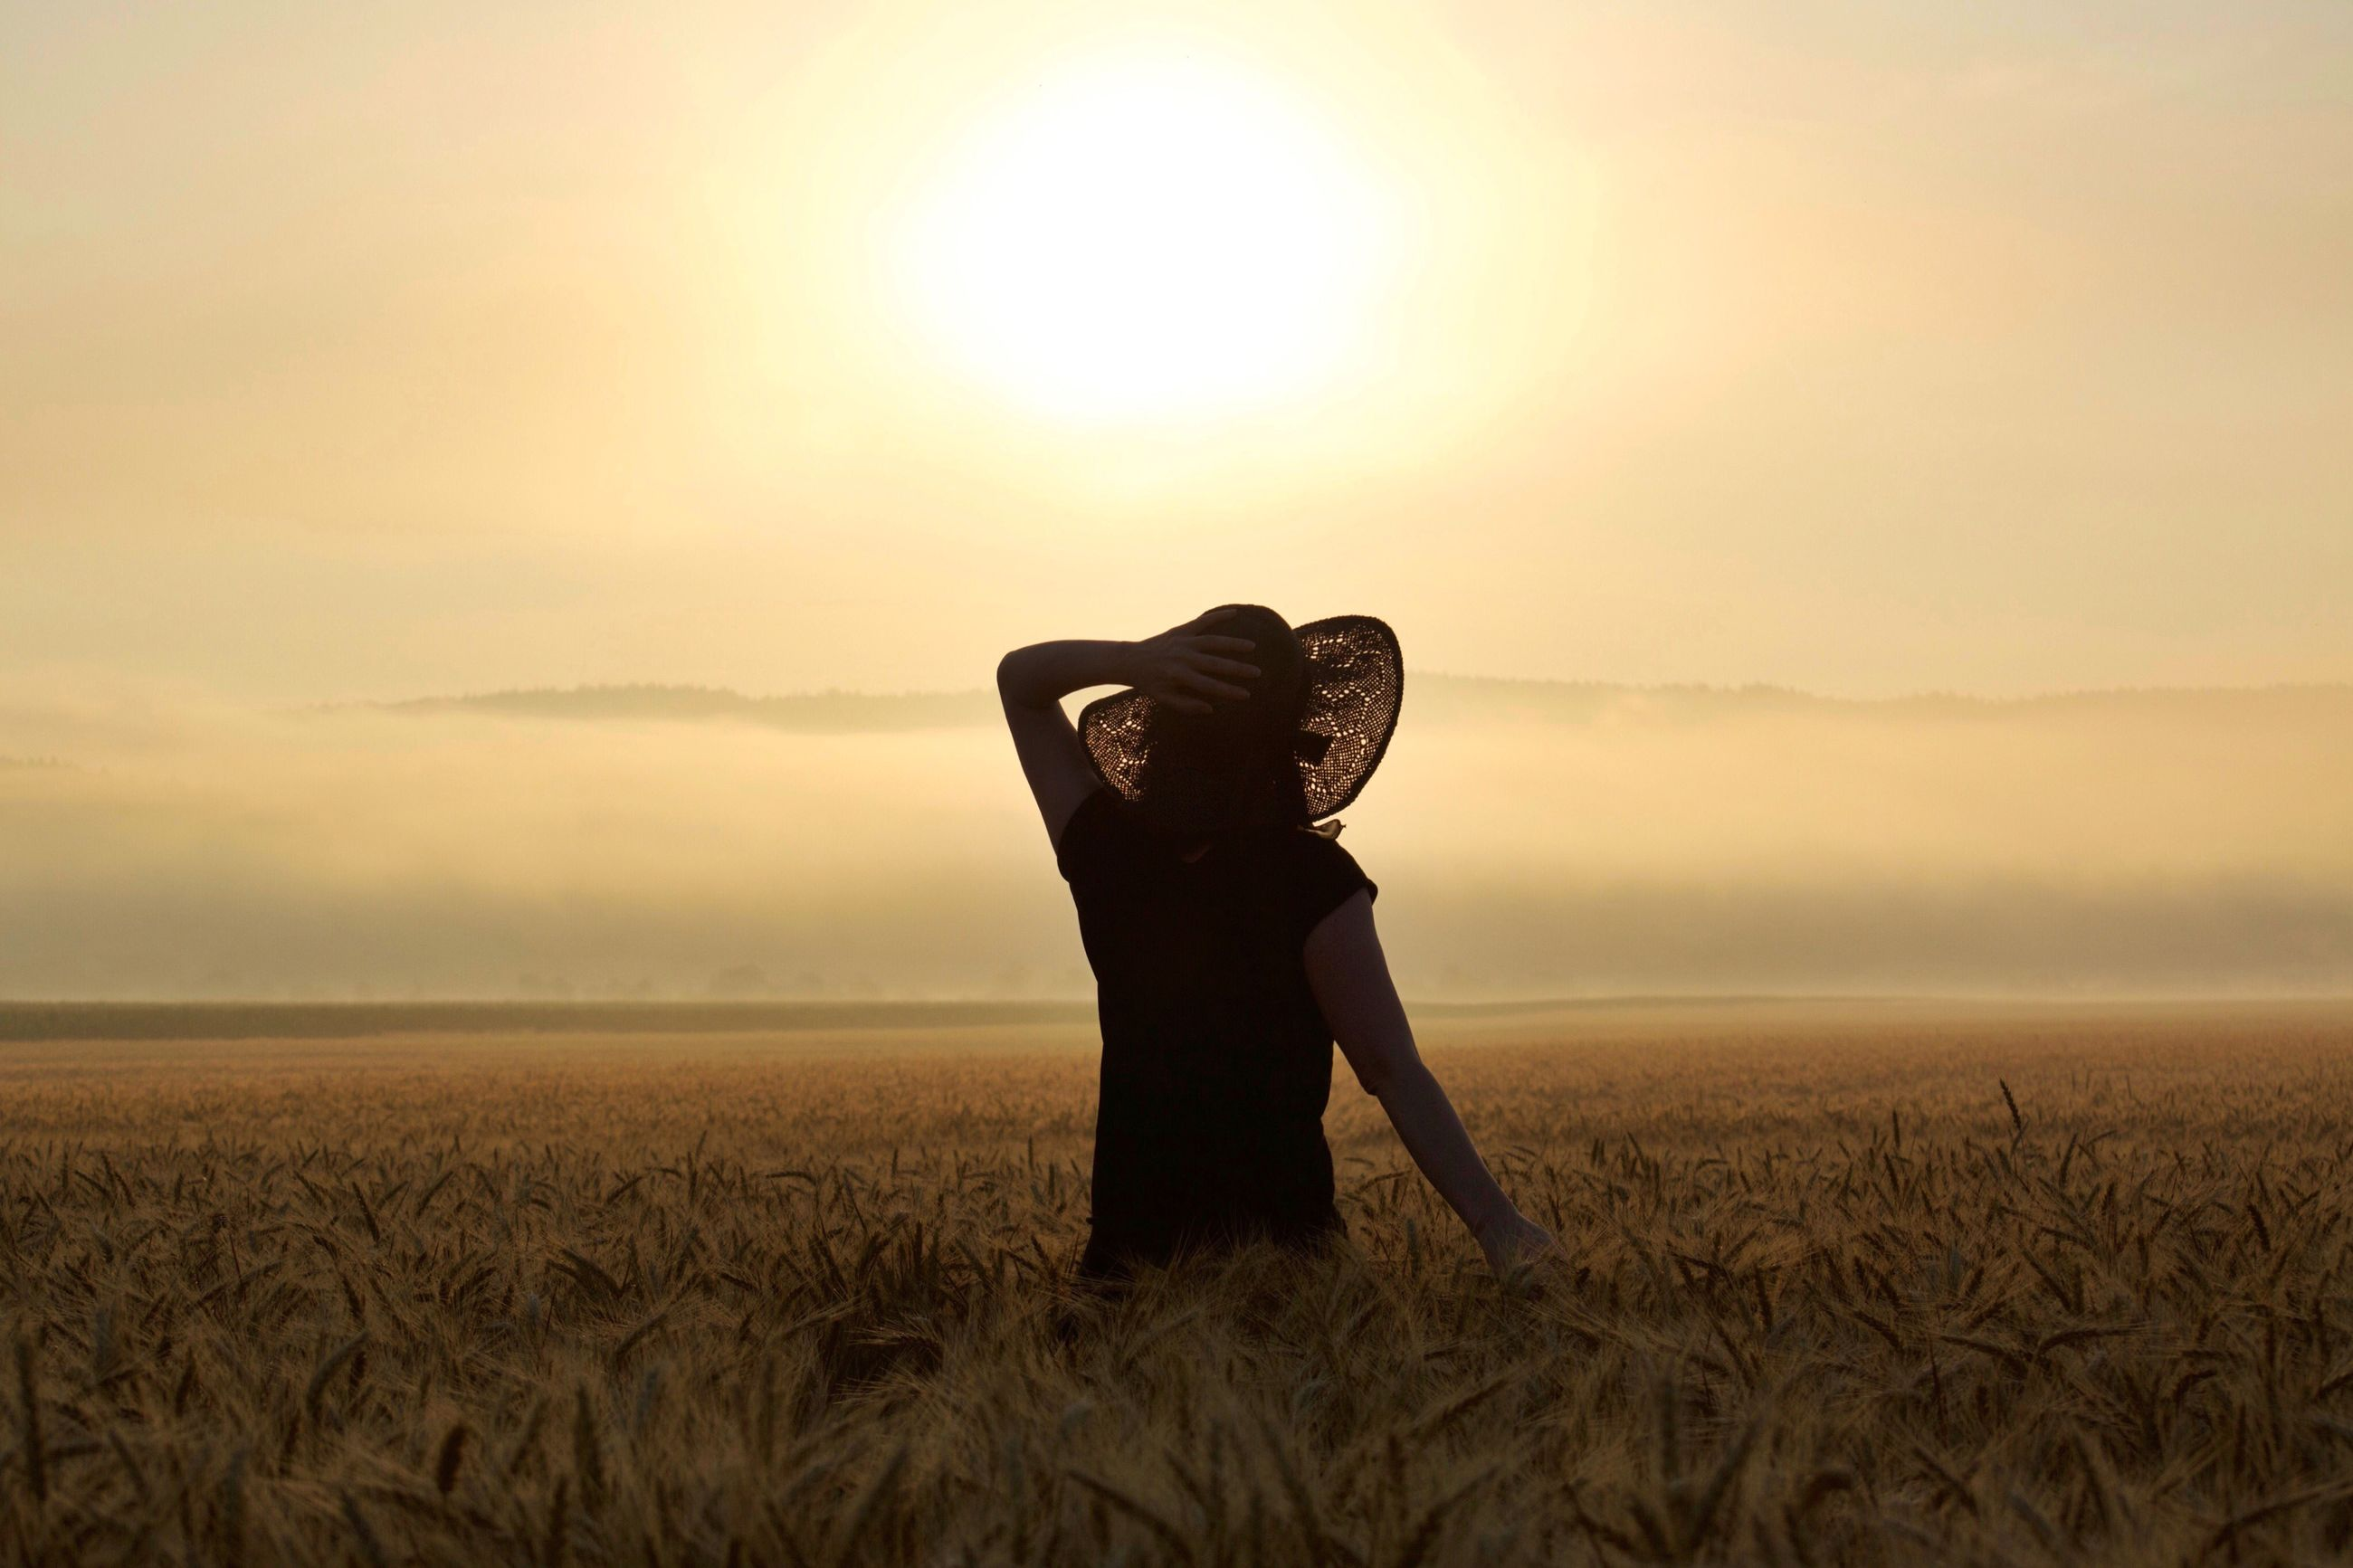 field, sky, nature, one person, leisure activity, sunset, outdoors, lifestyles, beauty in nature, scenics, real people, landscape, agriculture, growth, day, grass, young women, standing, women, young adult, people